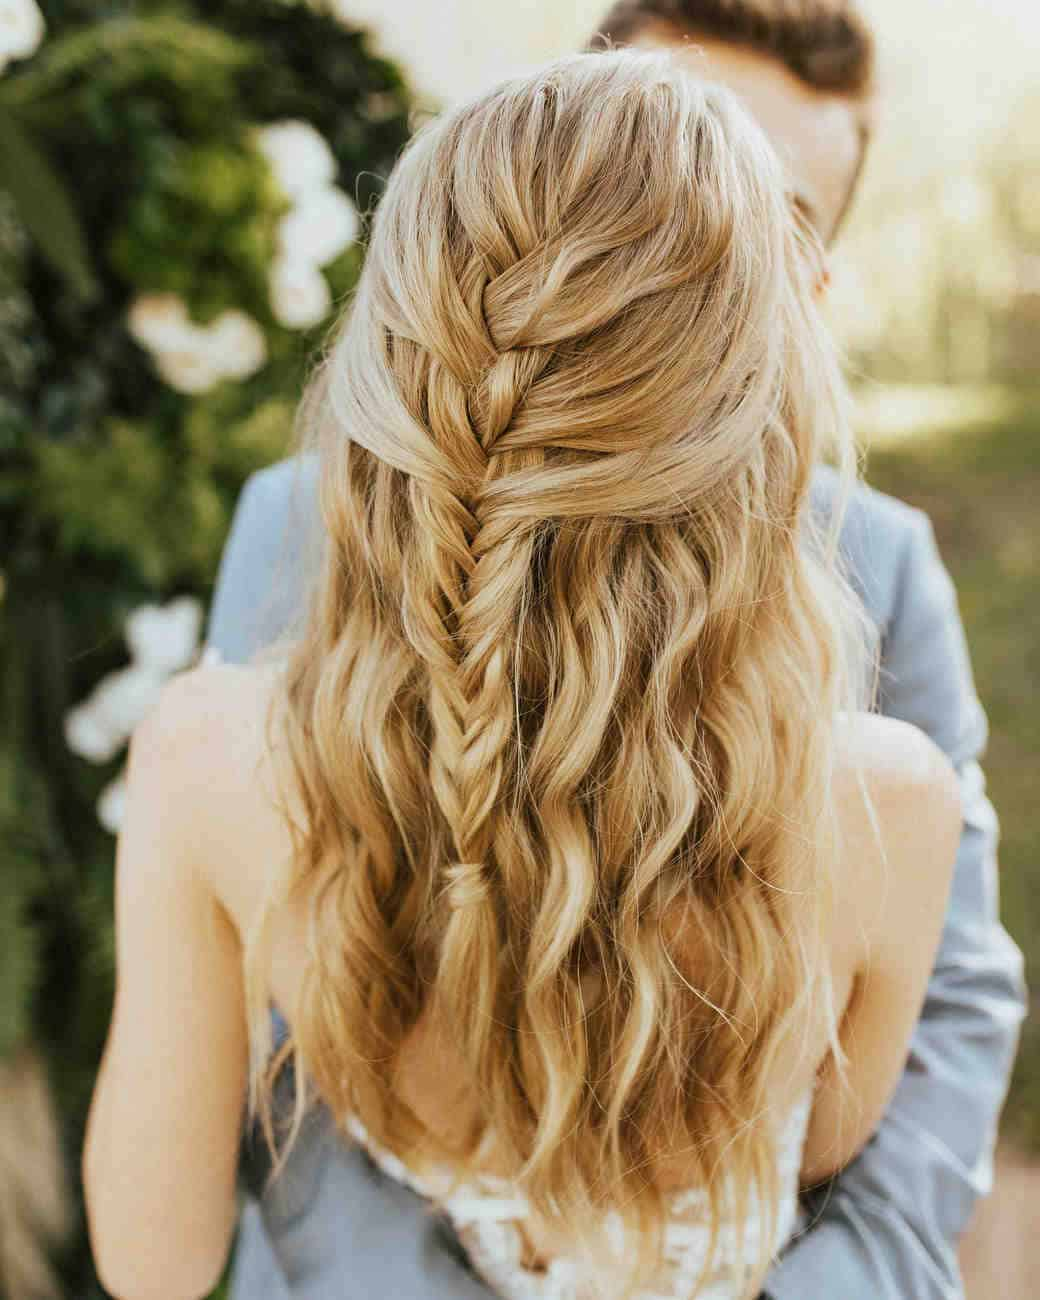 Wedding Bridesmaid Hairstyles For Long Hair: 14 Wedding Hairstyles For Ladies With Long Locks